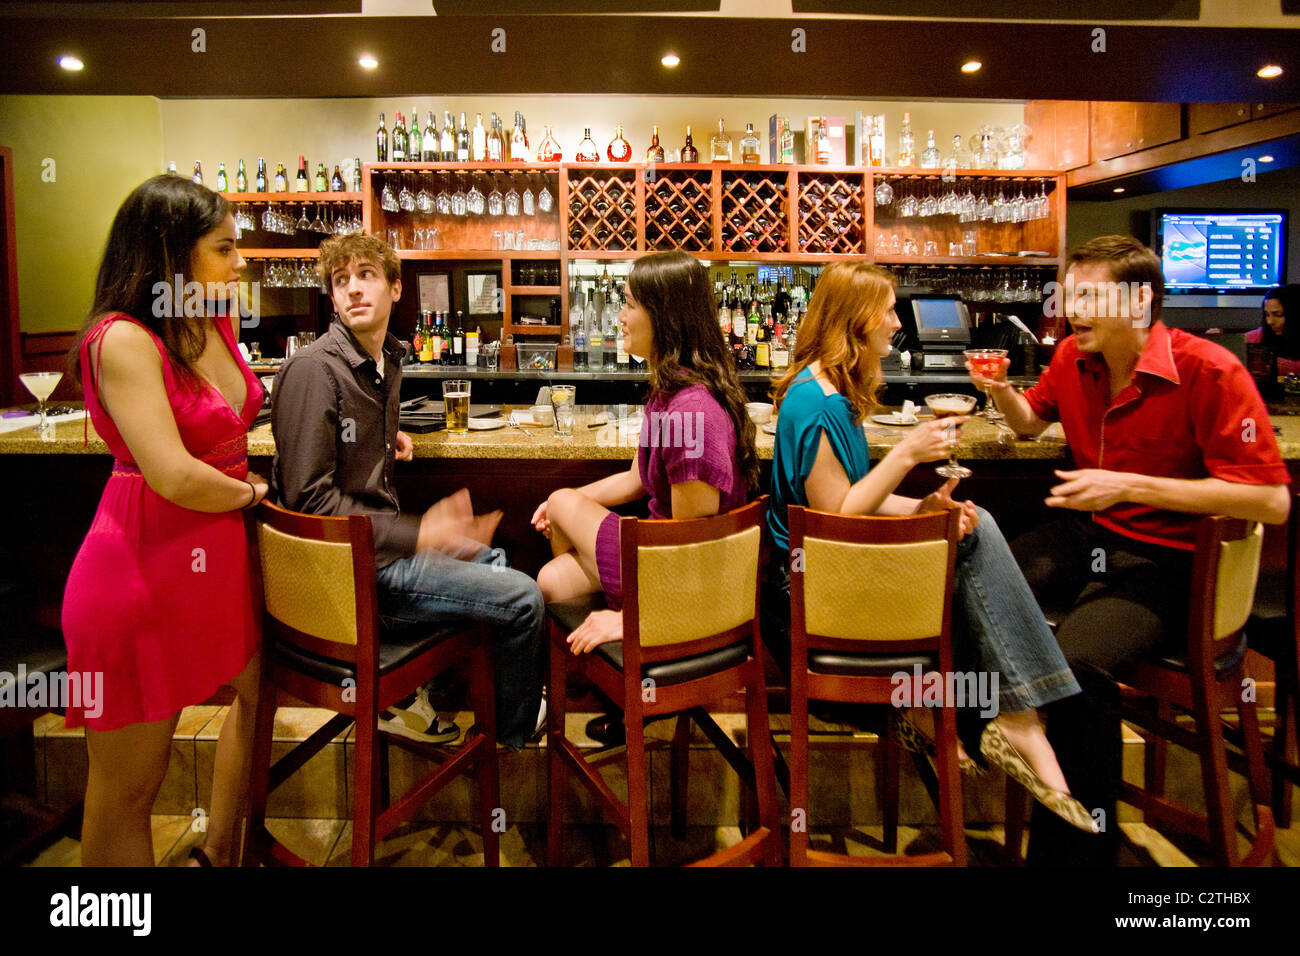 speed dating in fairfield ca Meetup hosts dozens of singles groups in the bay area, who host numerous activities throughout the week, ranging from hiking and other outdoor activities to mixers, speed dating, and dances.